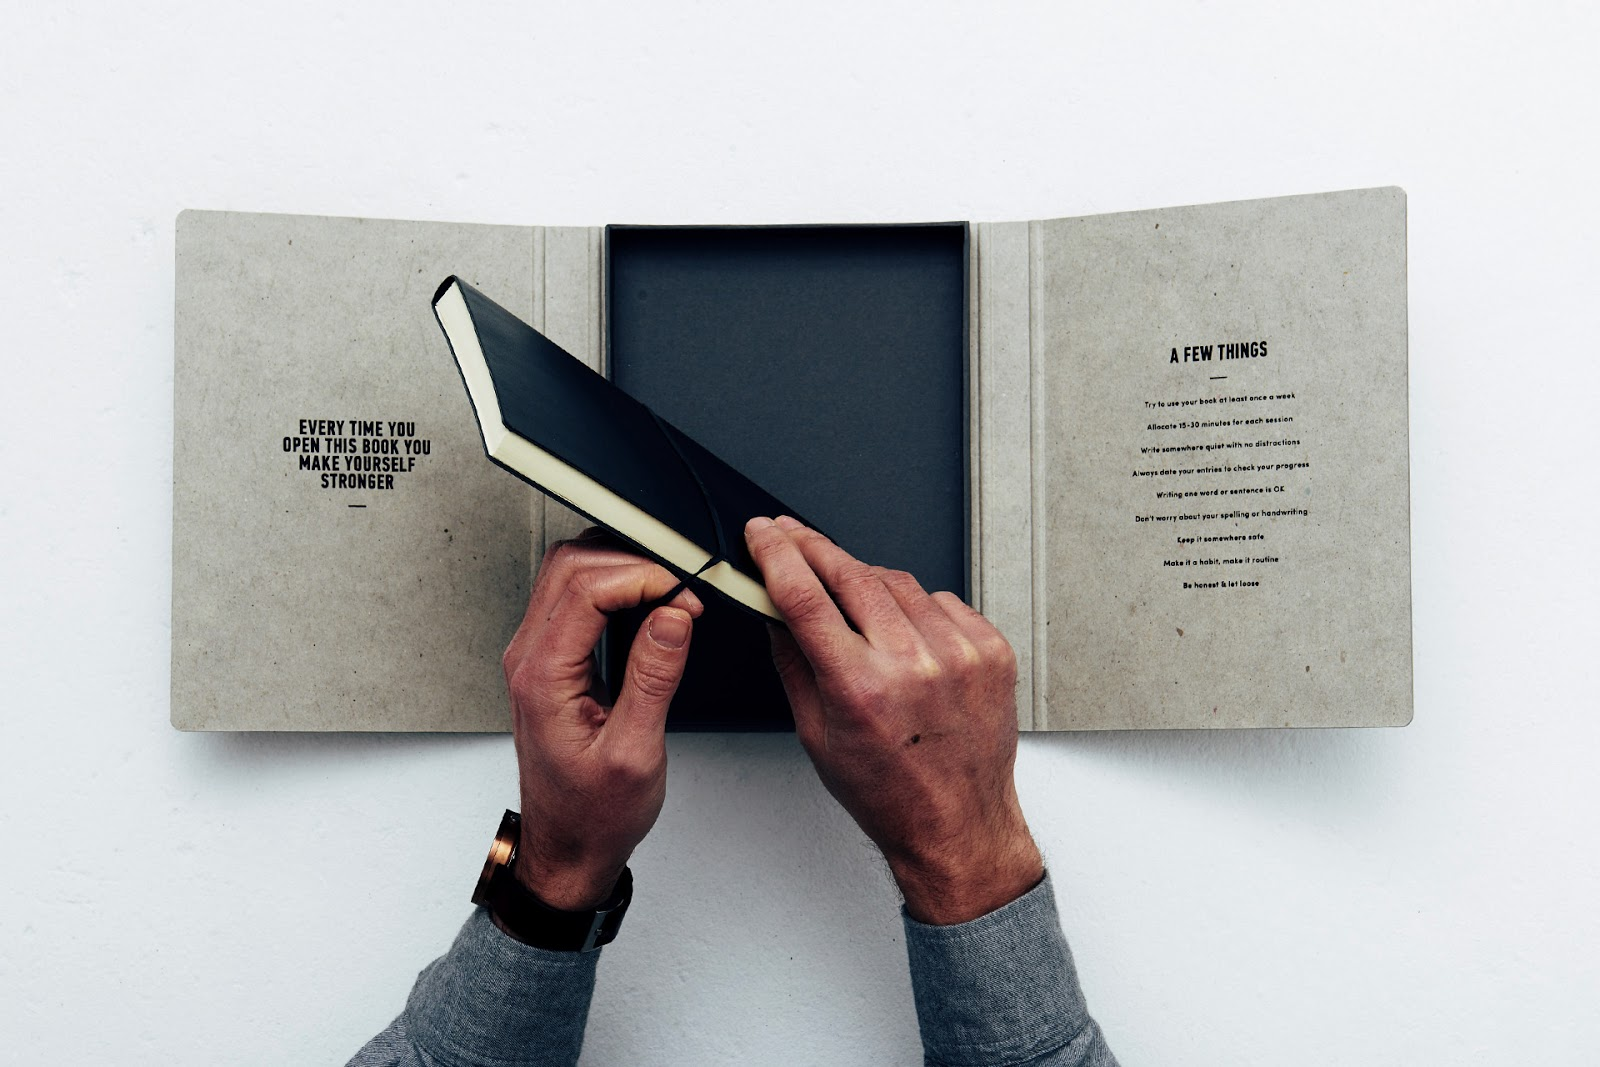 lifestyle blog about menswear and travel looks at the mind journal product